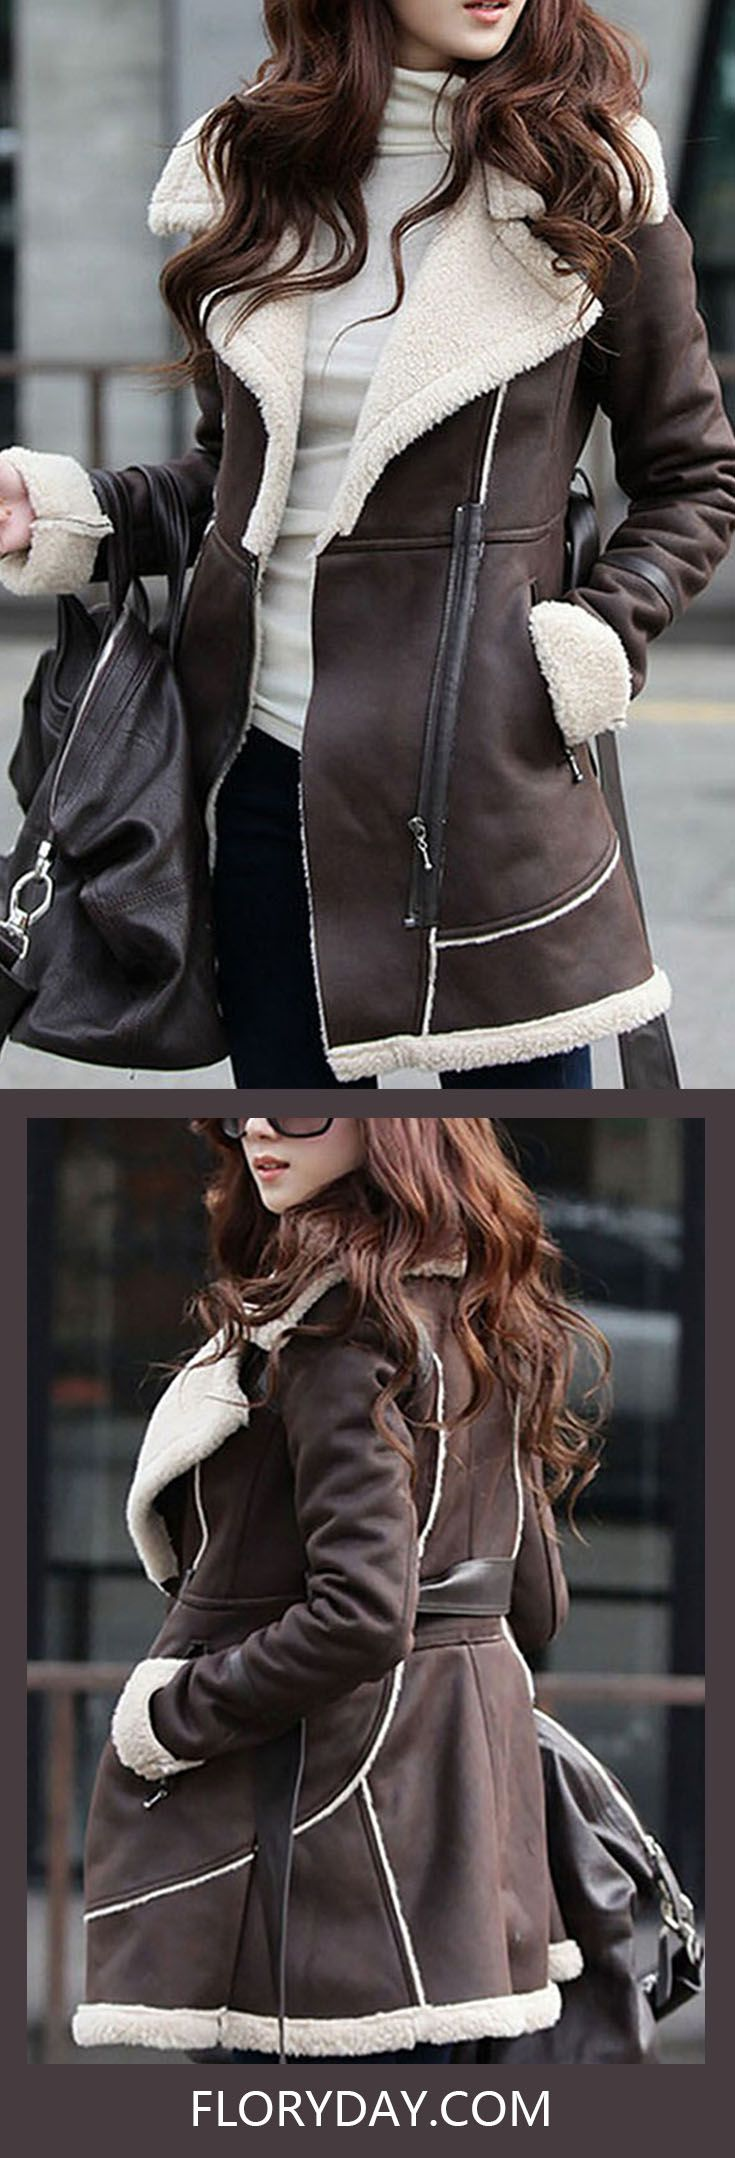 Leather jacket zippay - Leather Faux Leather Brown Short Long Sleeve Collar Coats Jackets